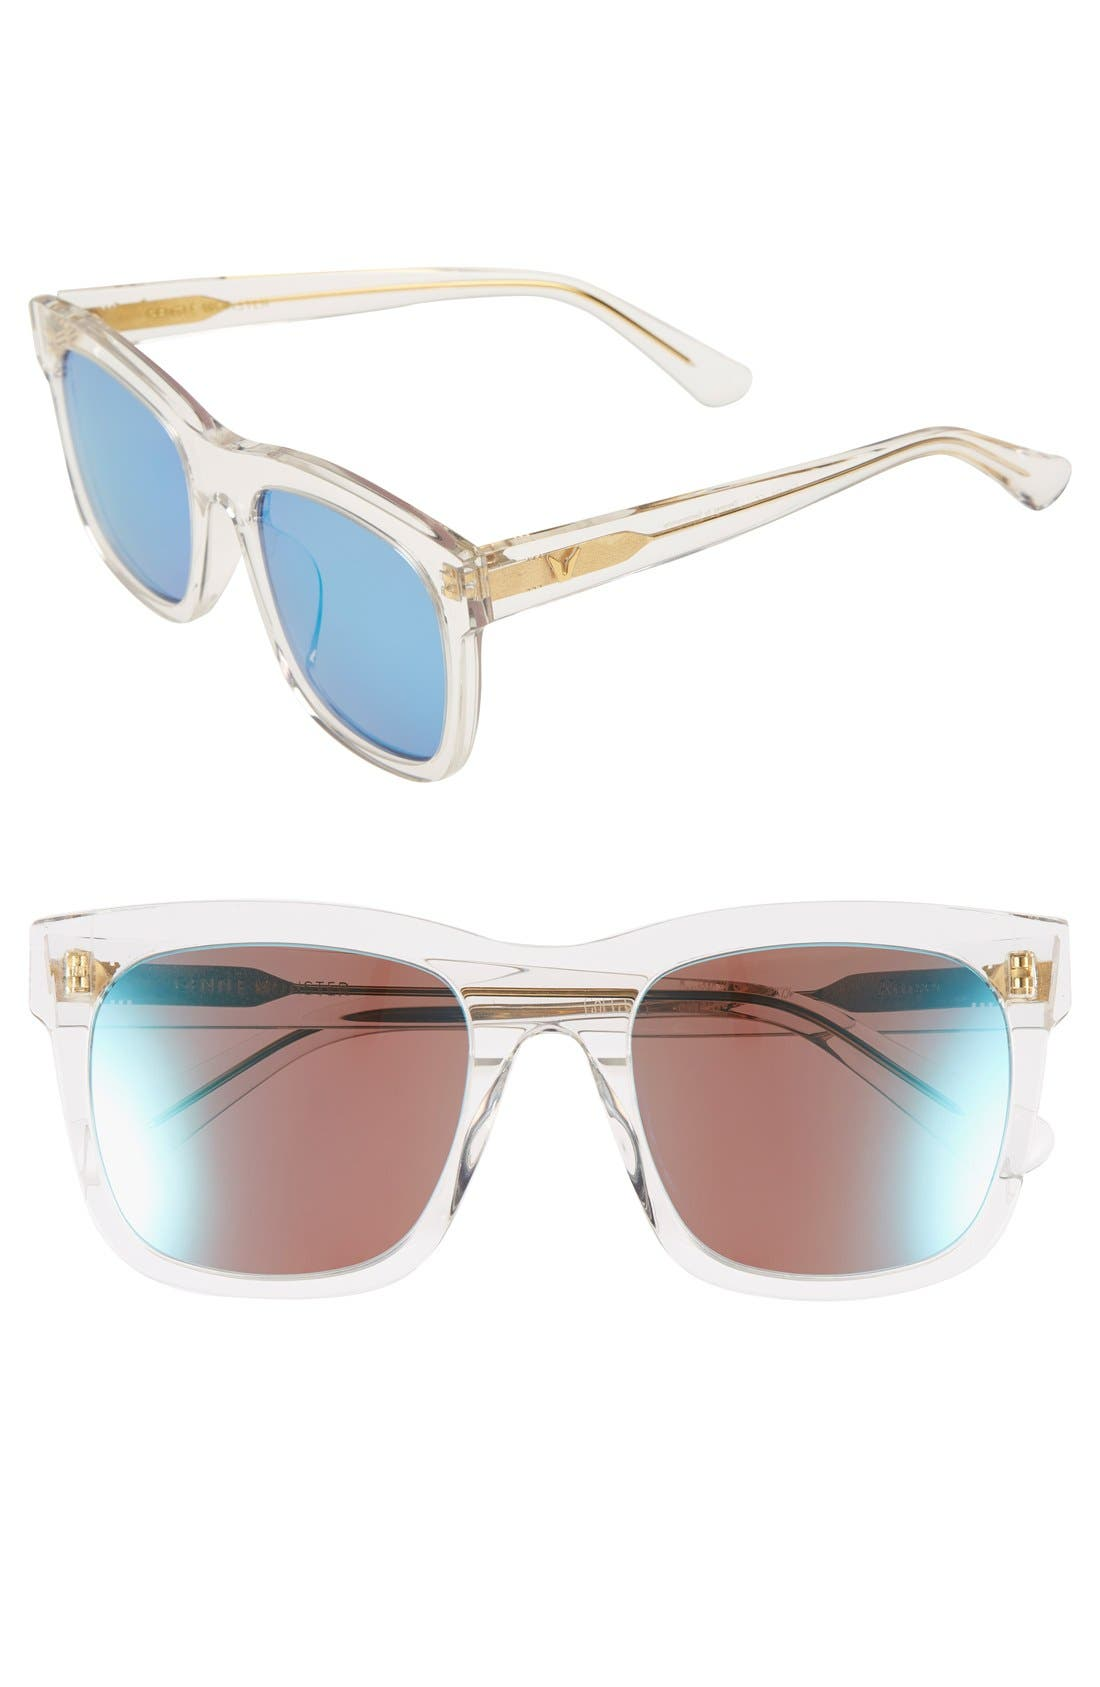 GENTLE MONSTER 54mm Sunglasses